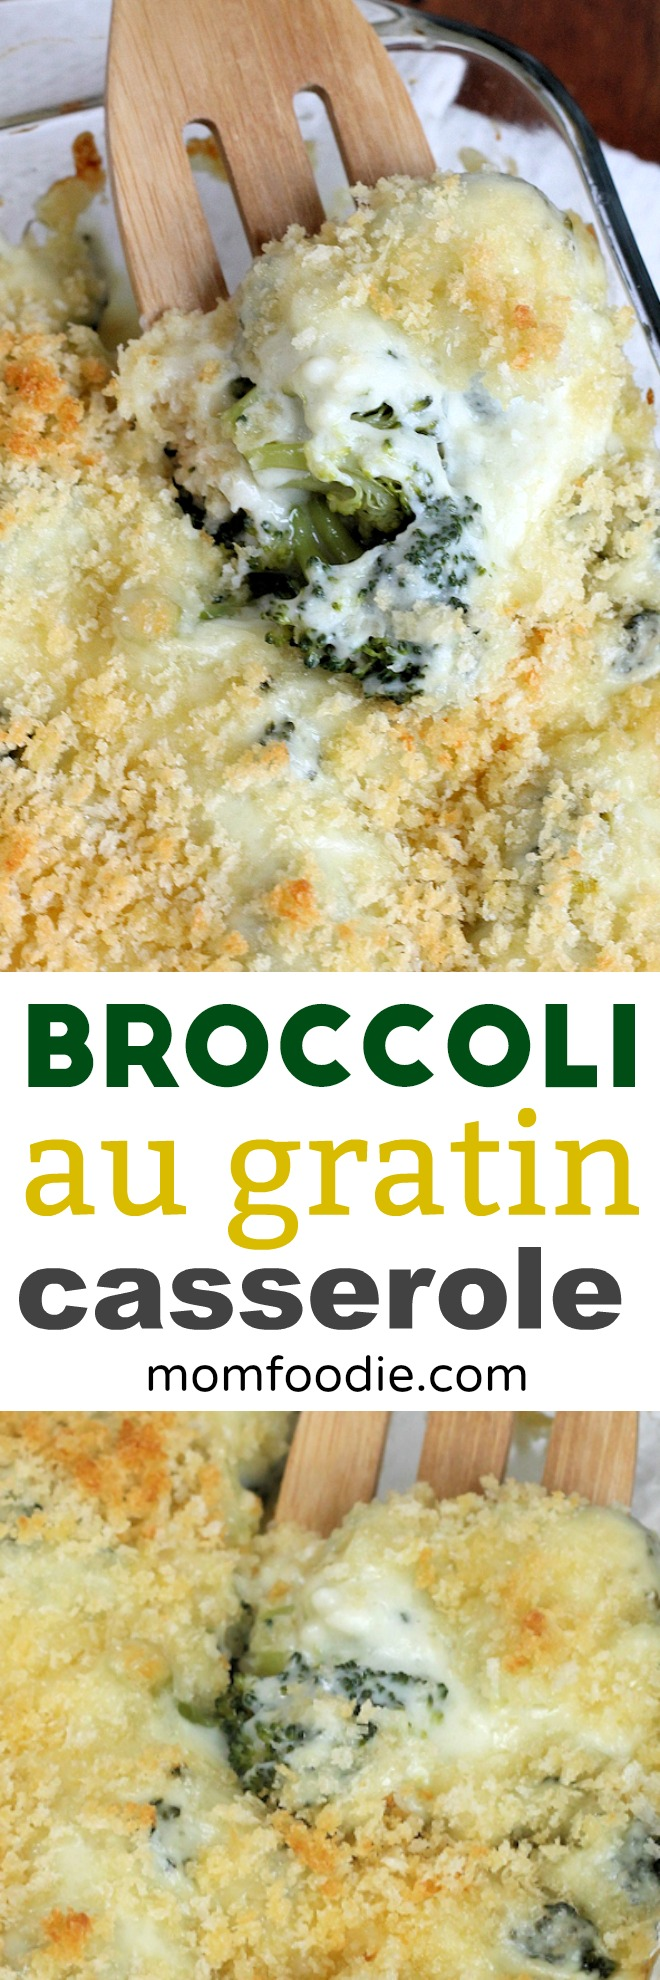 Broccoli Cheese Casserole - Easy Broccoli au Gratin Recipe #casserole #broccoli #comfortfood